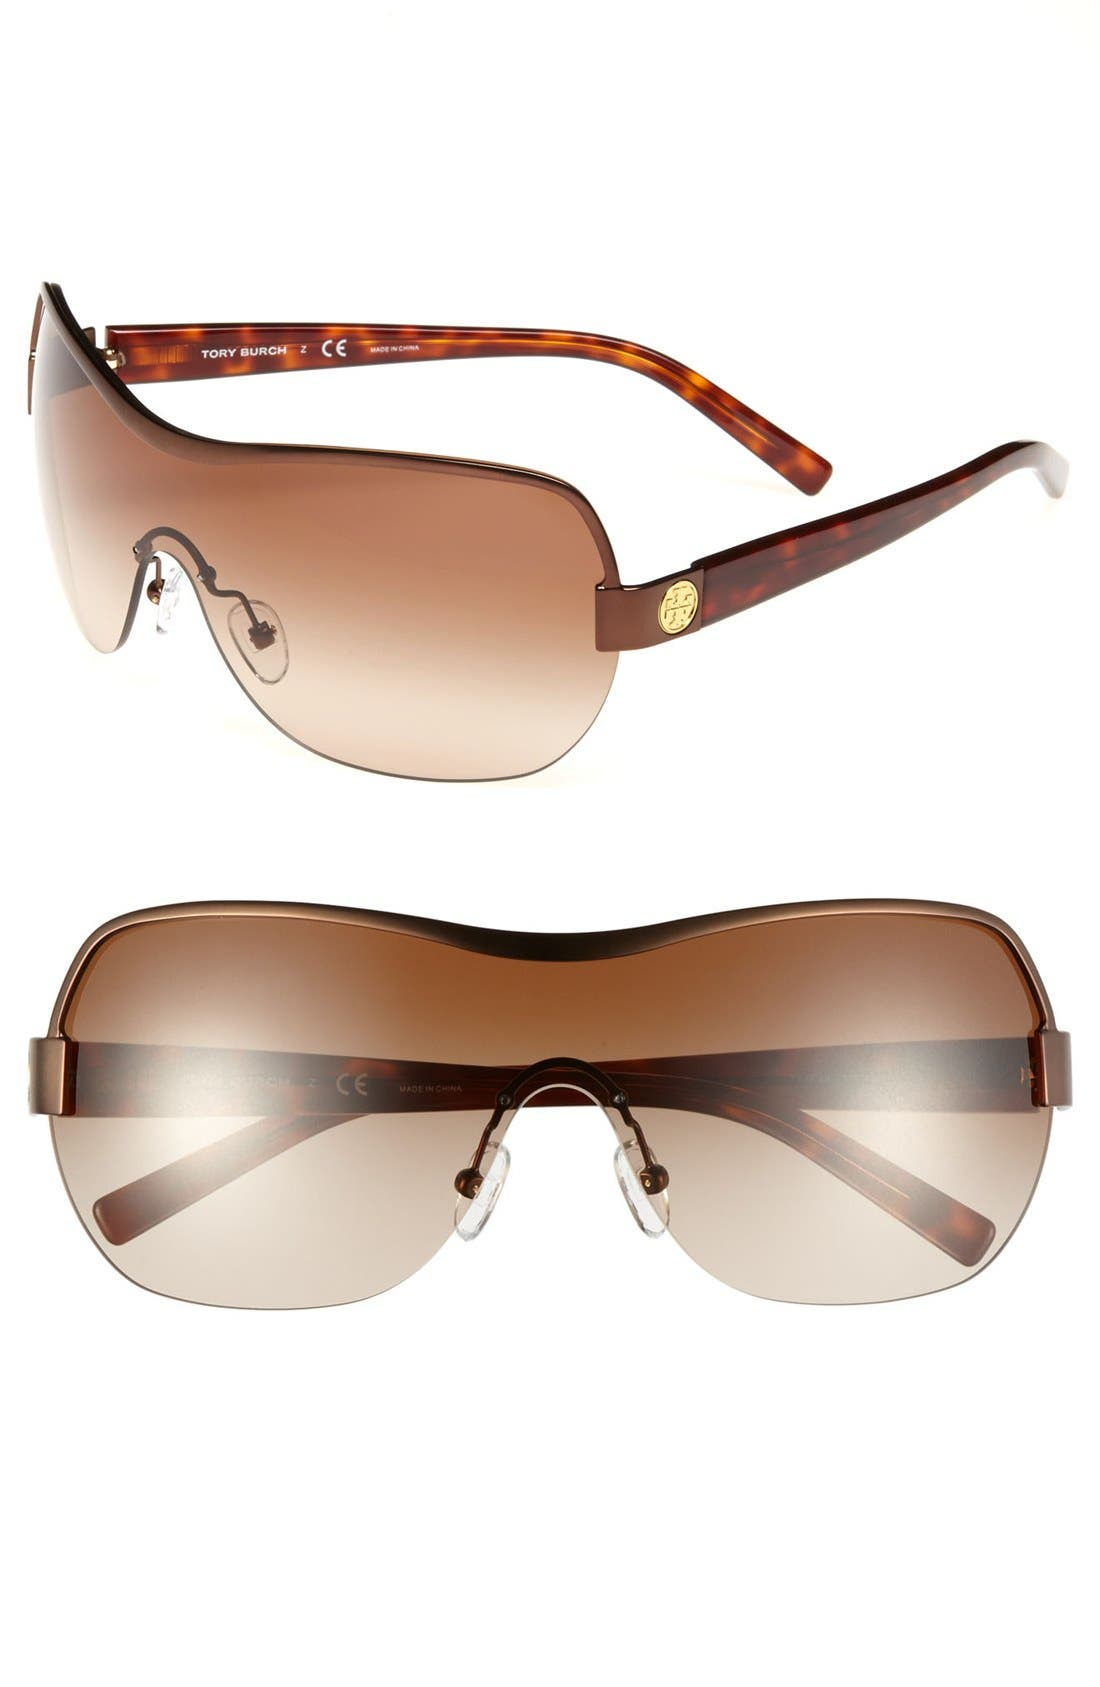 Alternate Image 1 Selected - Tory Burch 132mm Semi Rimless Shield Sunglasses